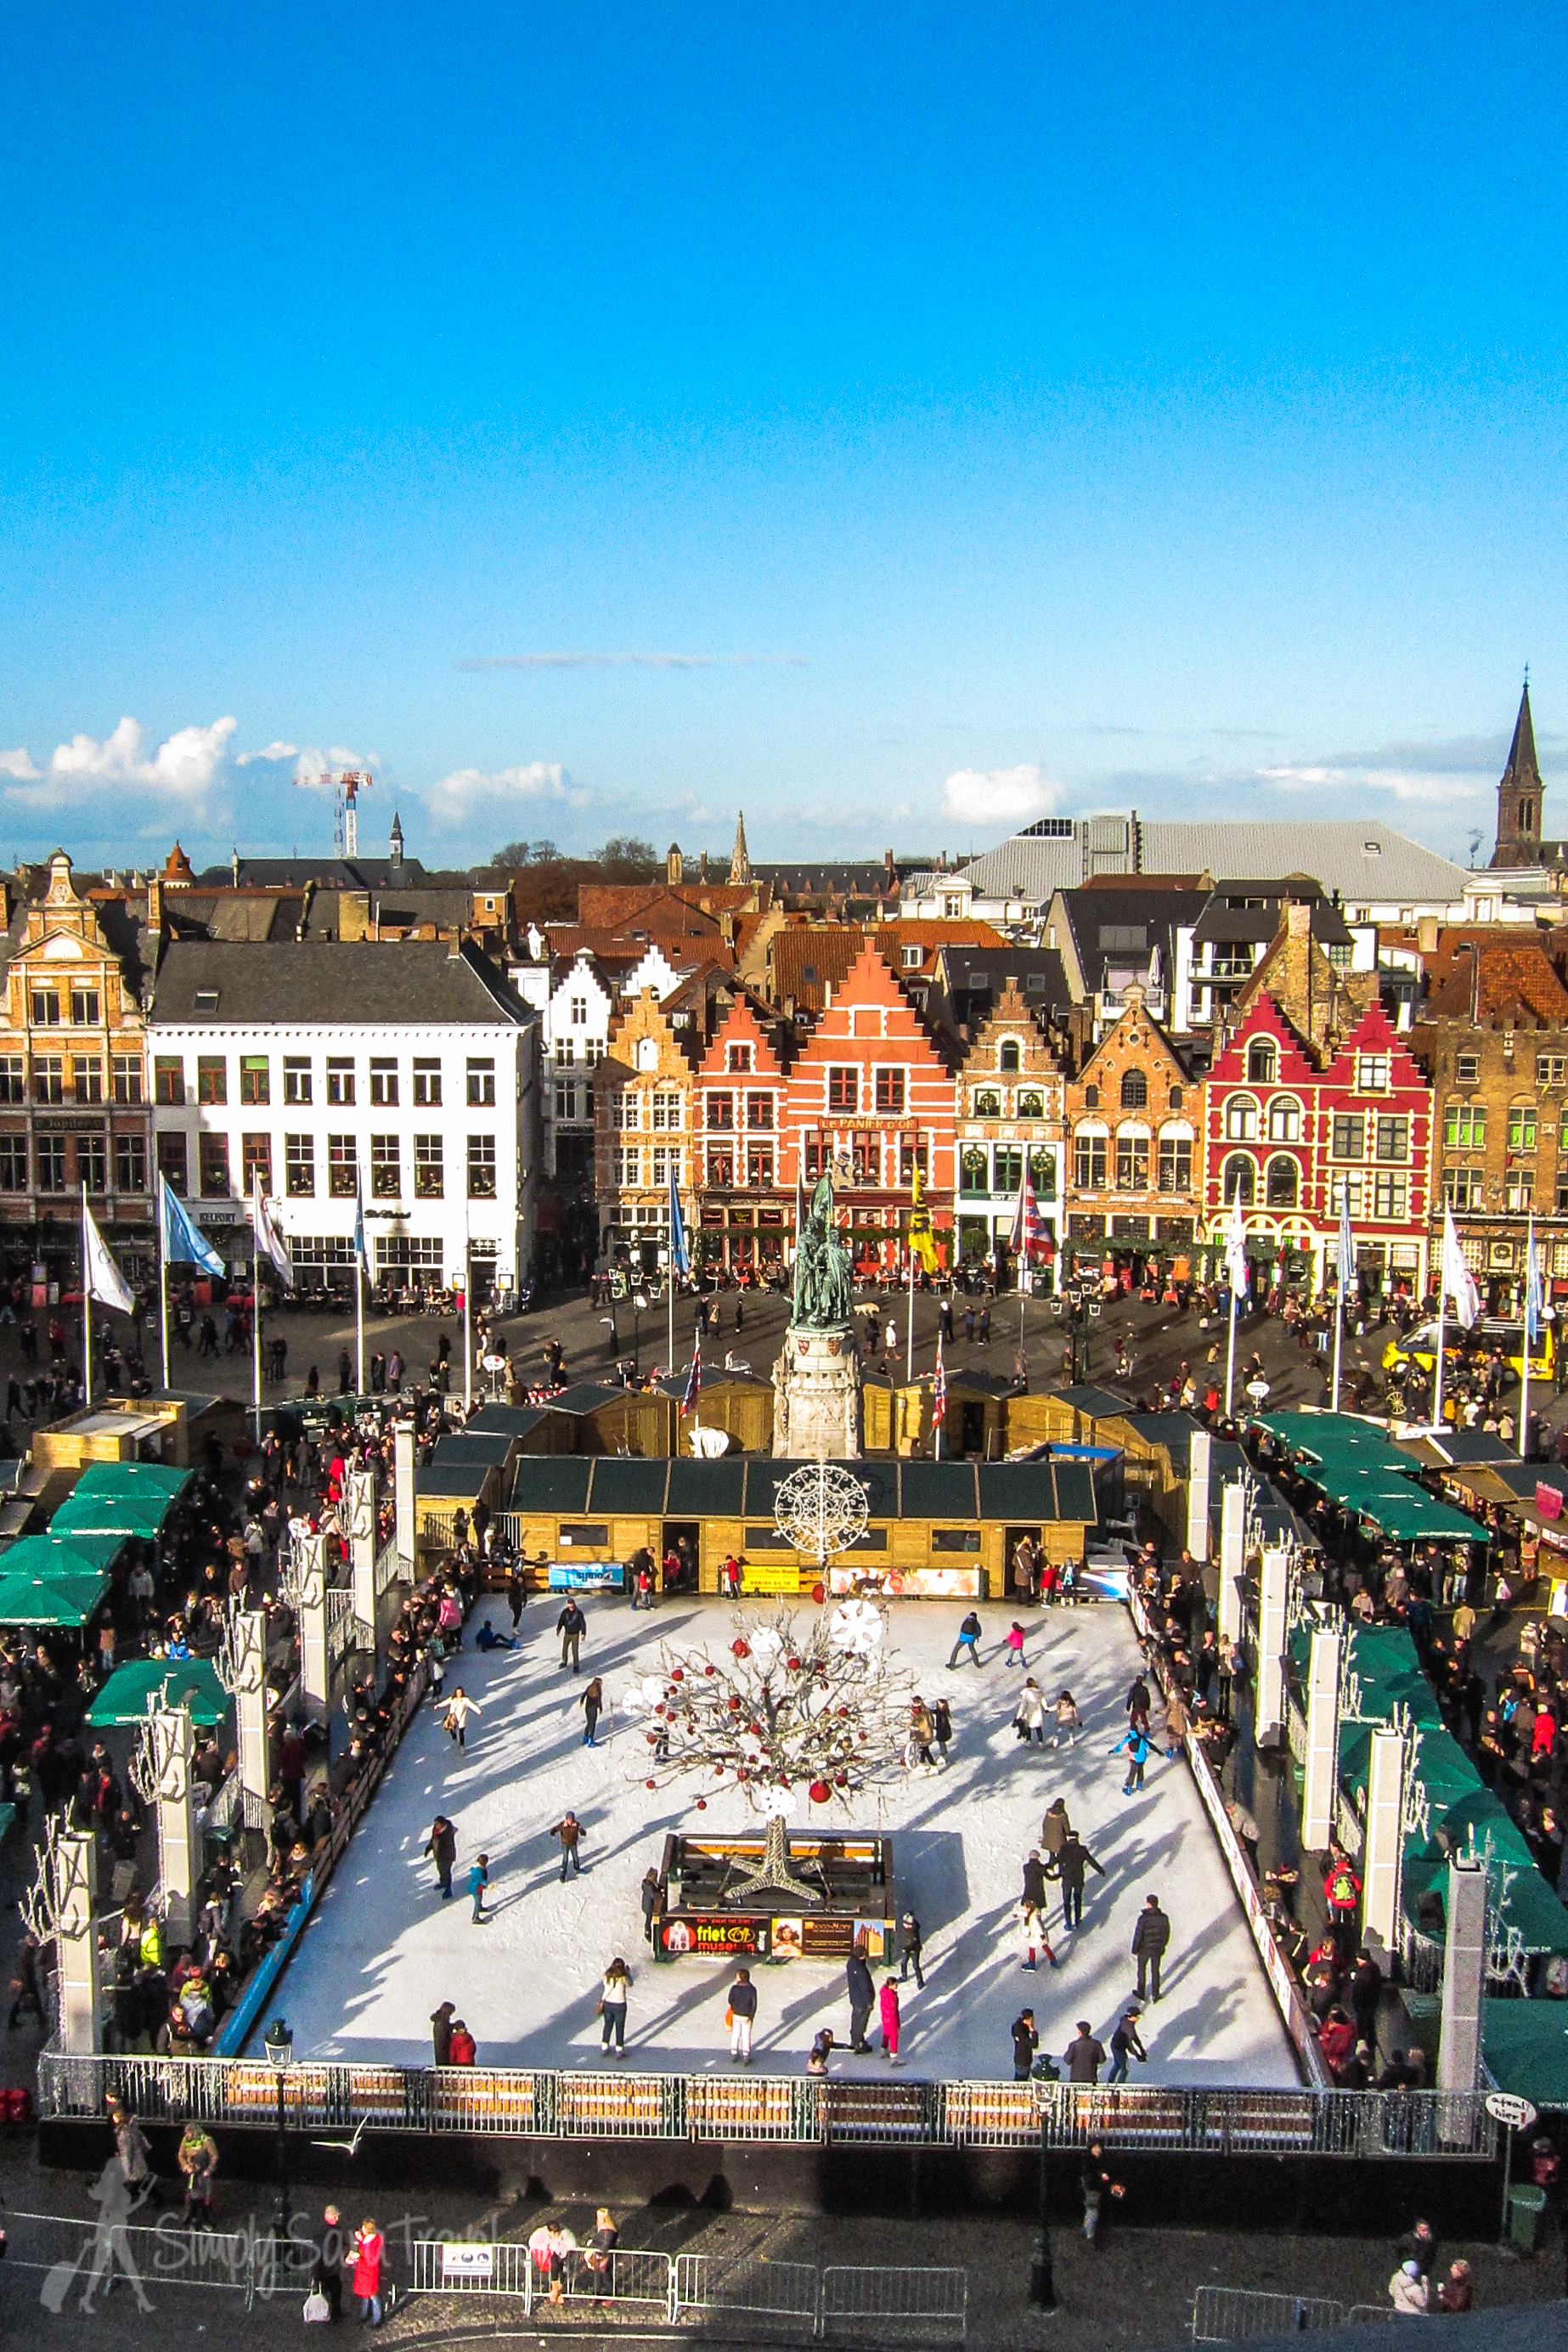 The Christmas market set up in Markt square in Bruges, as seen from above from the Belfry (bell tower)